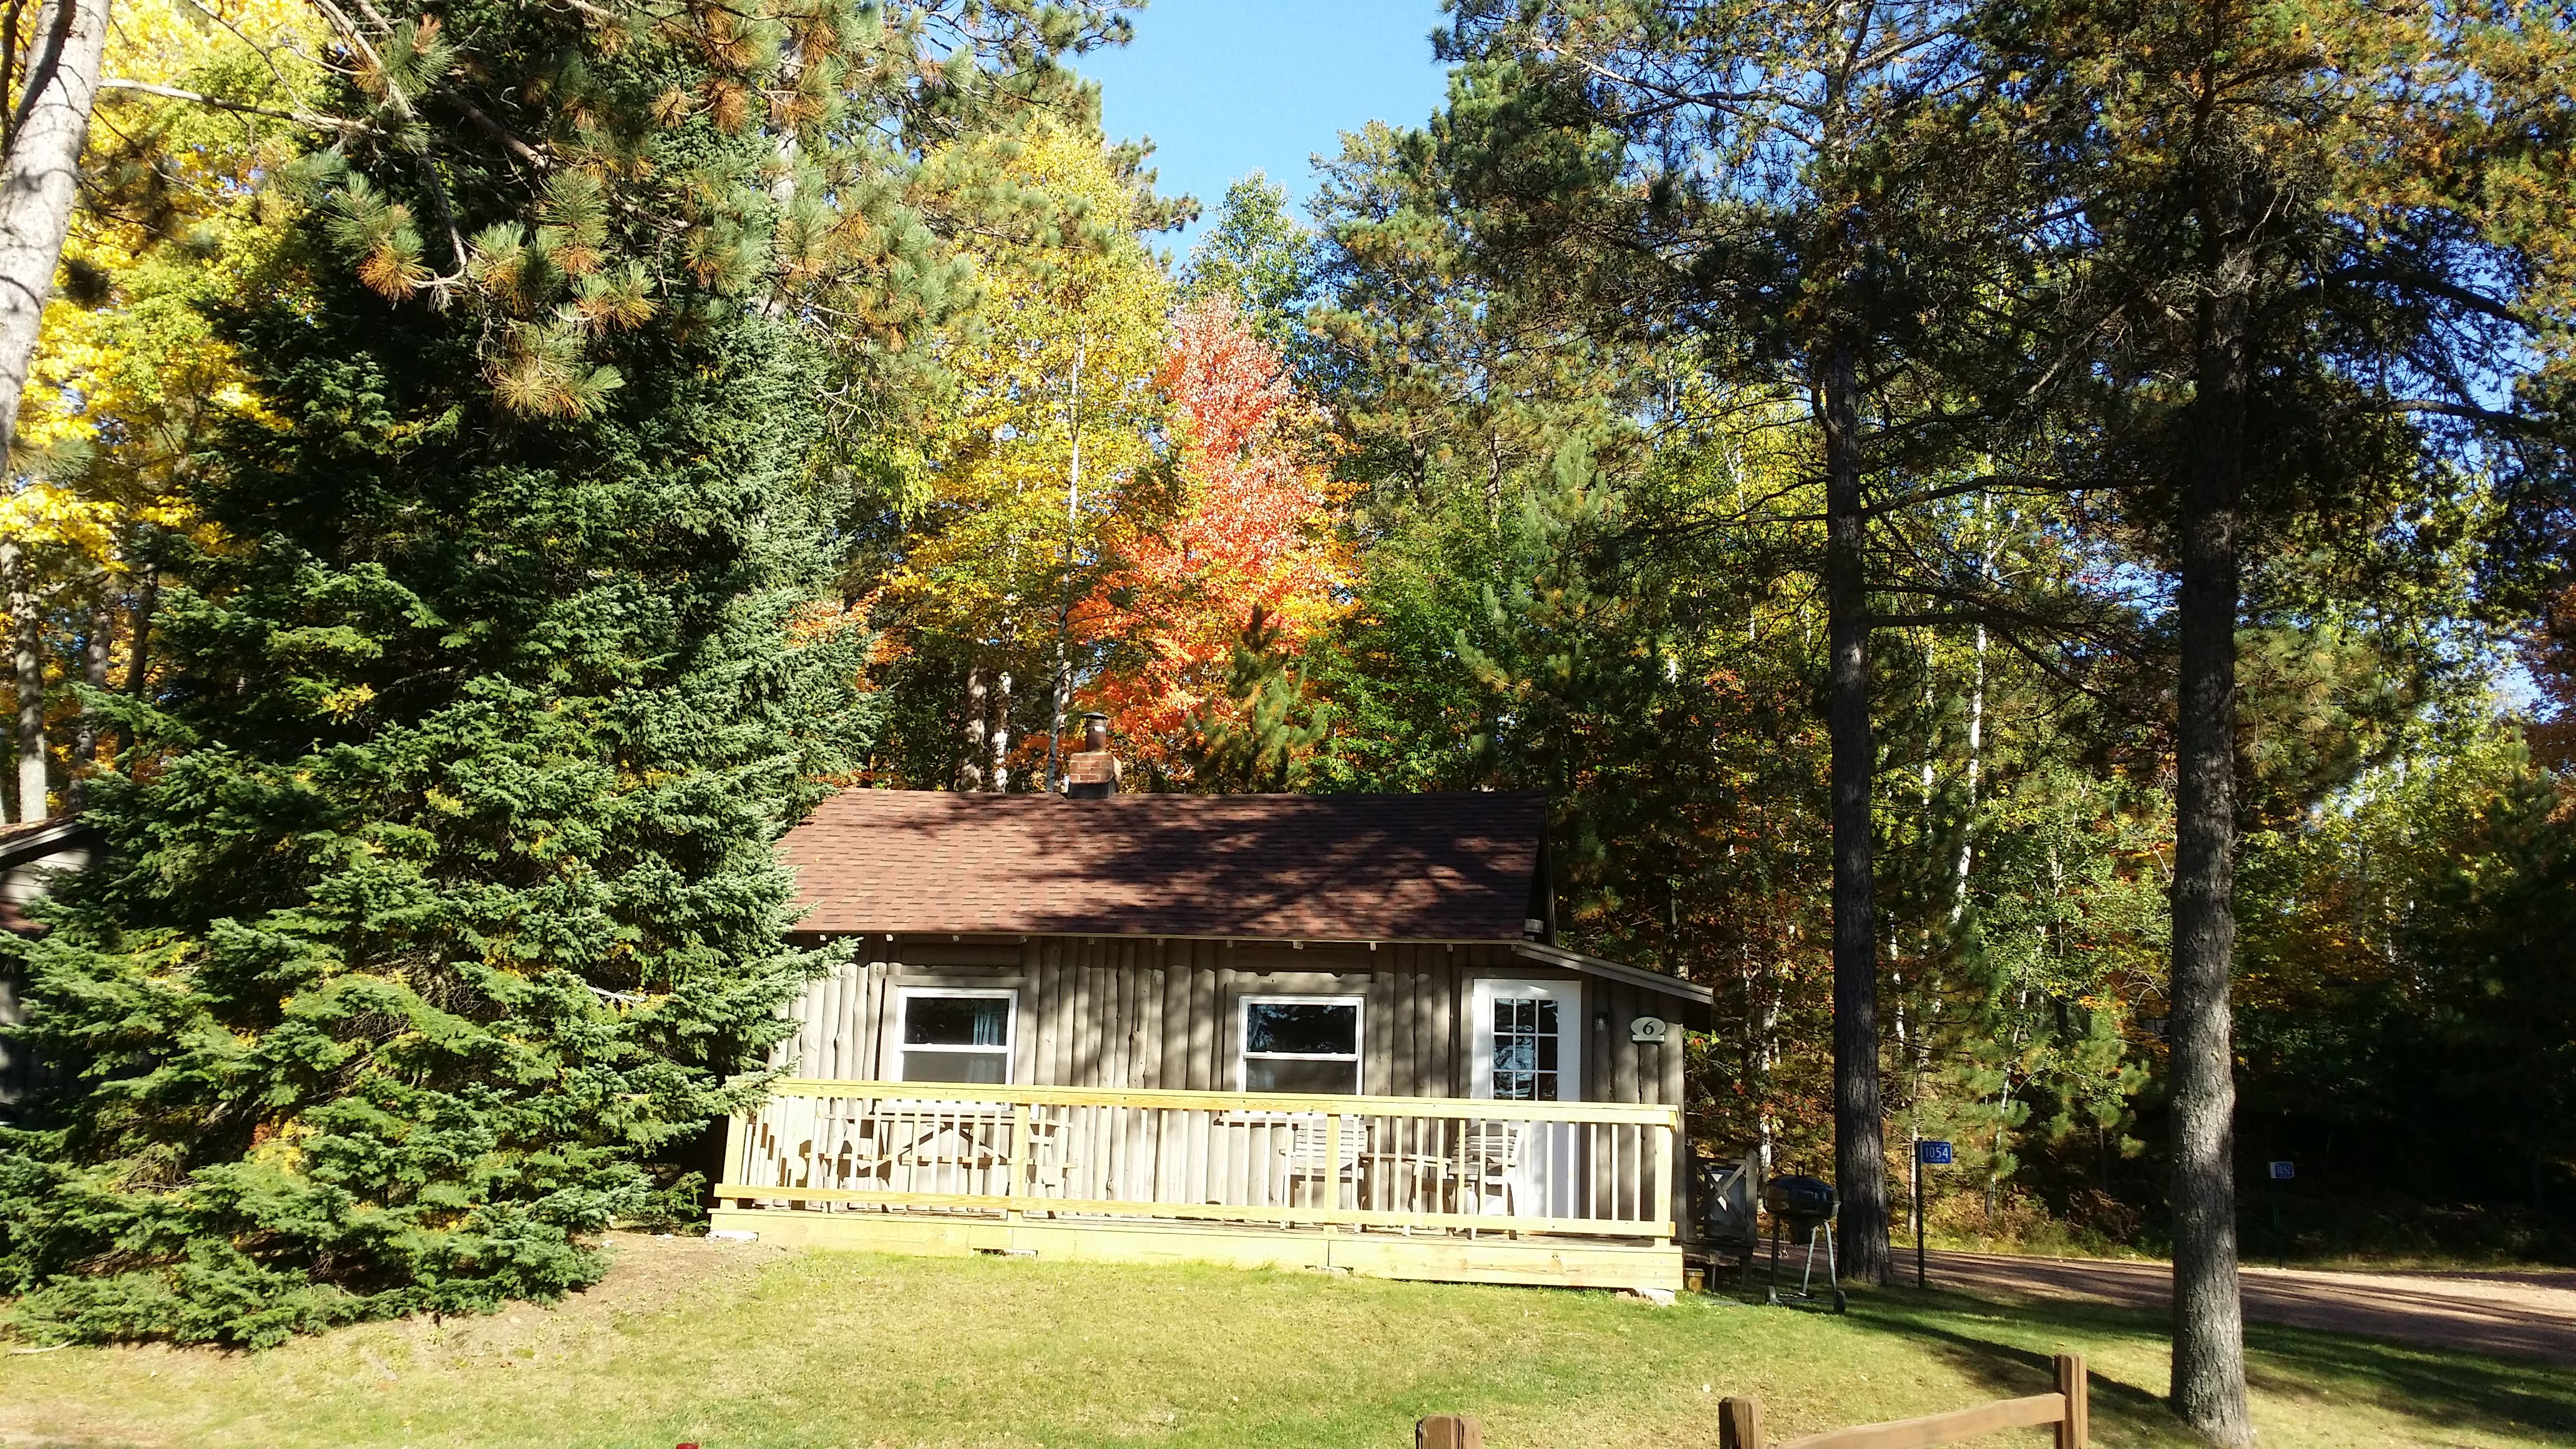 Warm and welcoming with fall colors and that big porch!